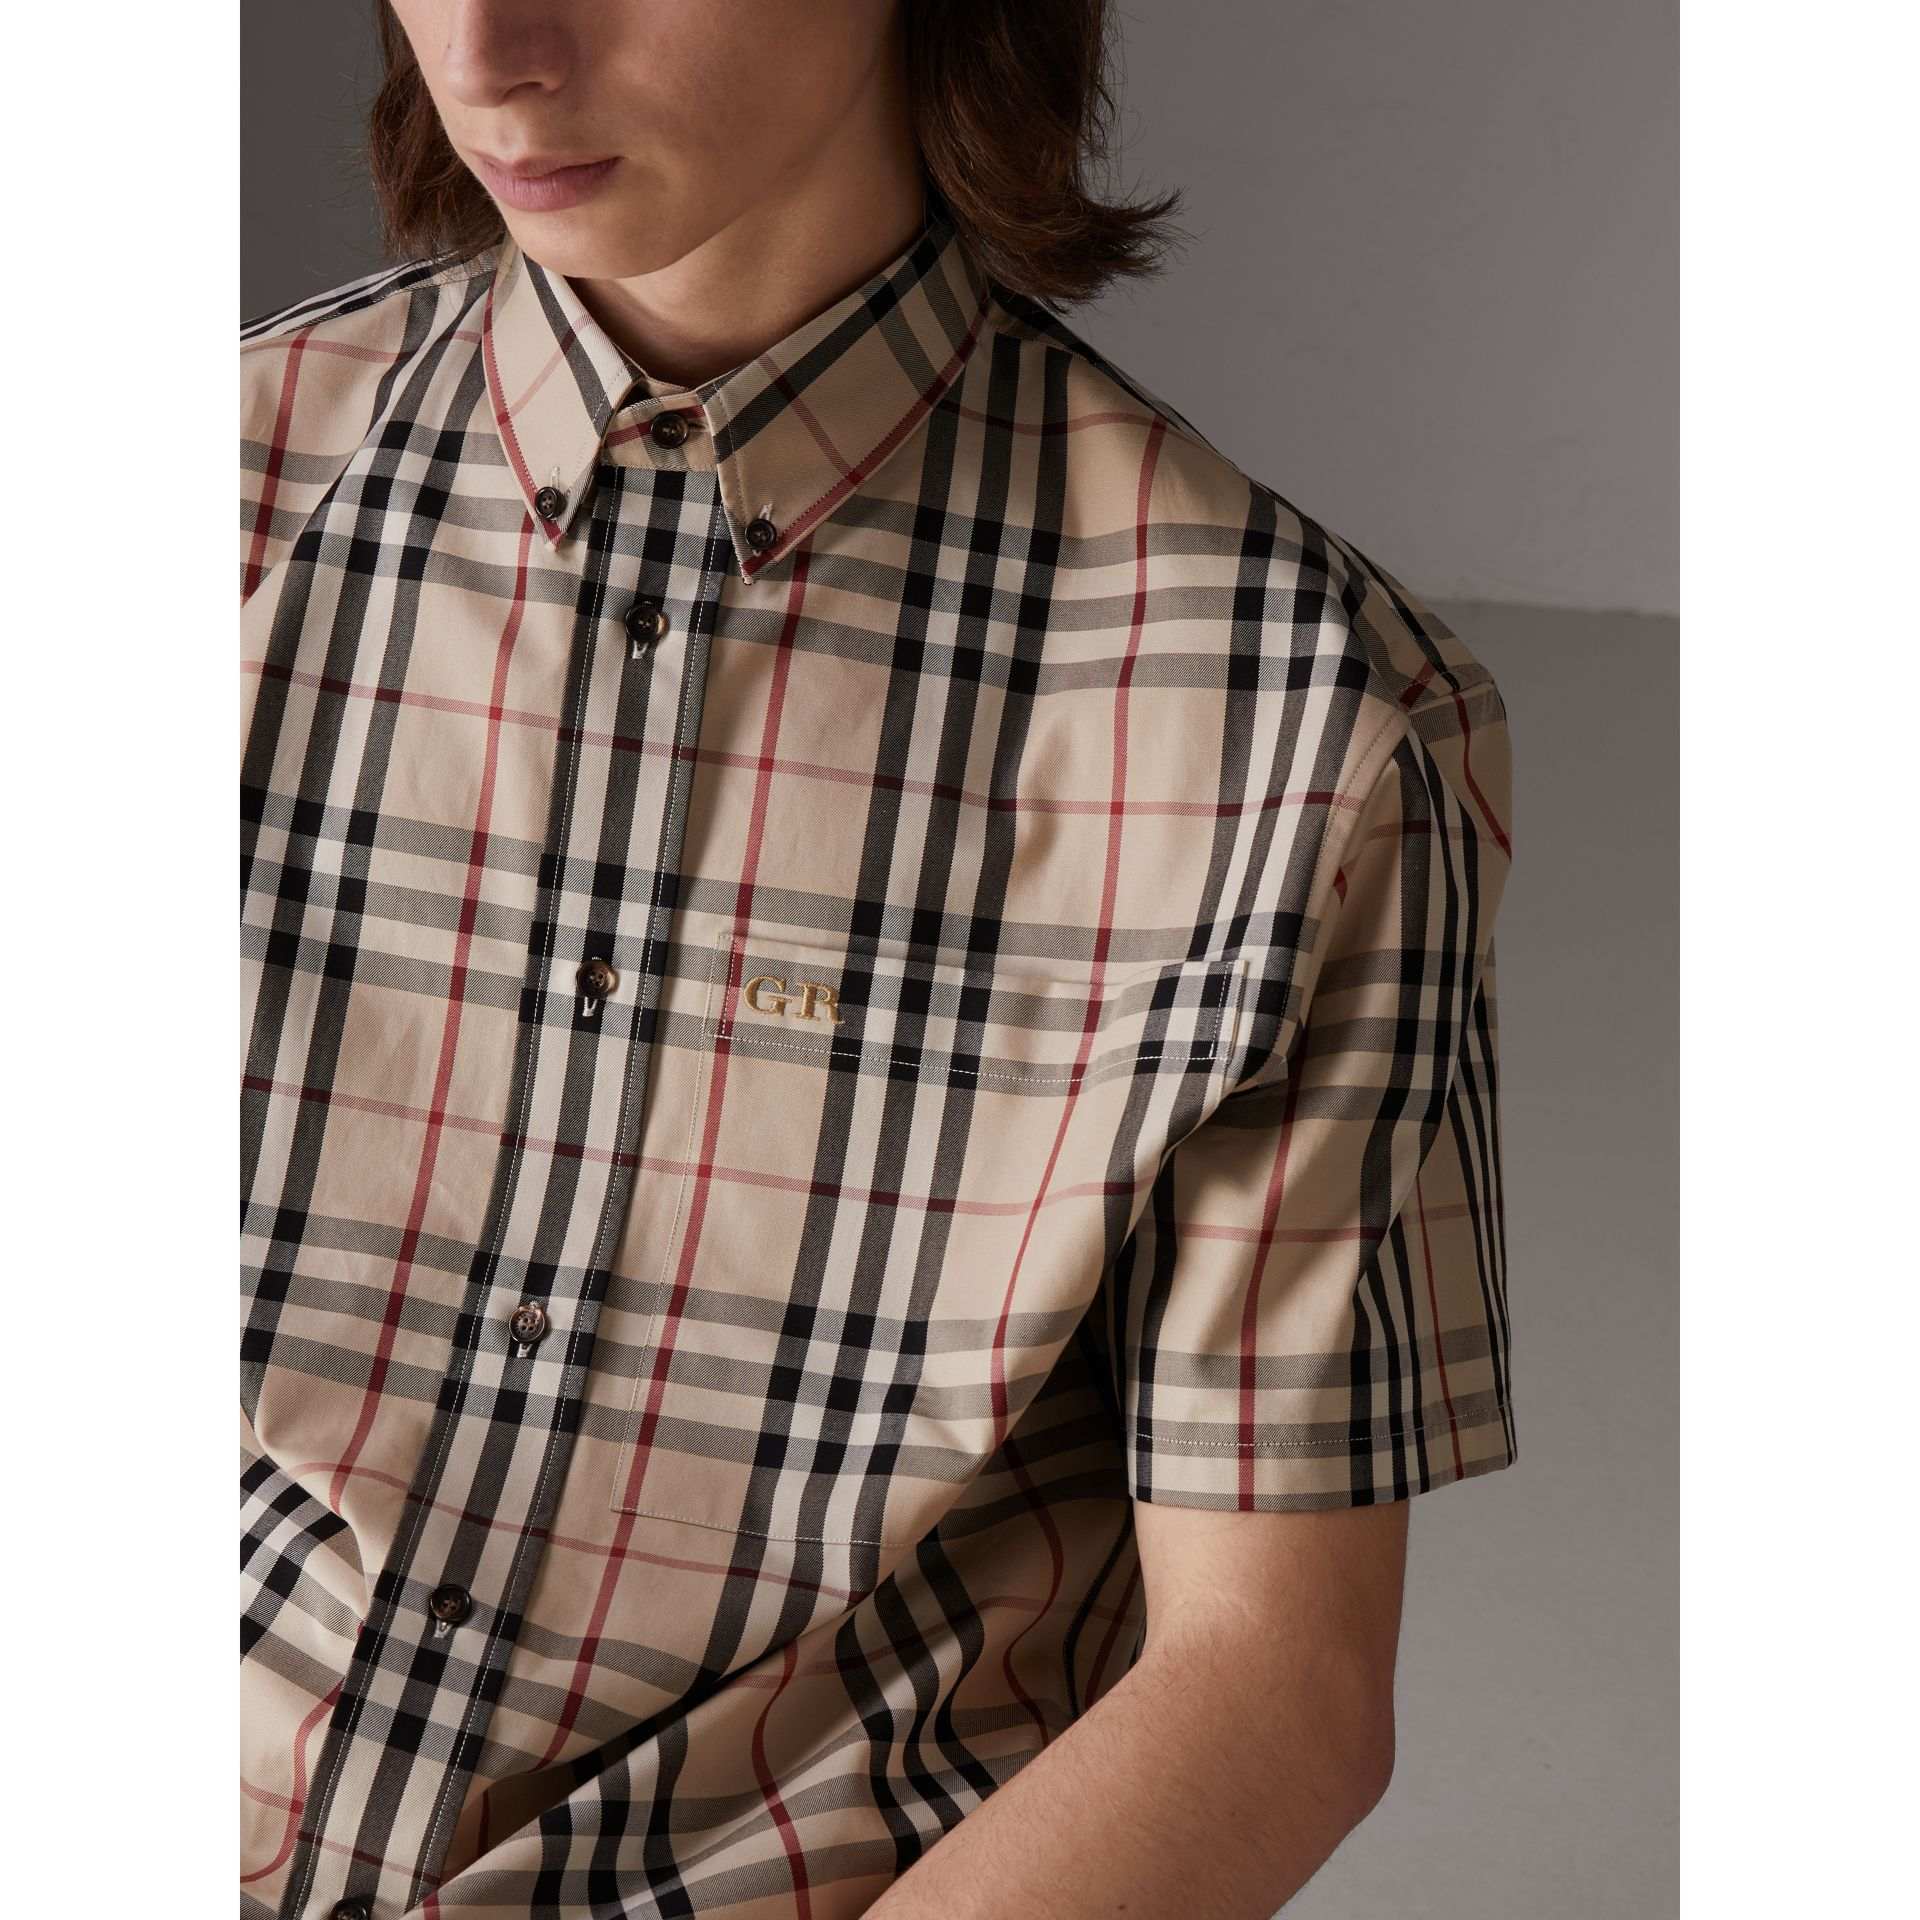 Gosha x Burberry Short-sleeve Check Shirt in Honey | Burberry Australia - gallery image 1